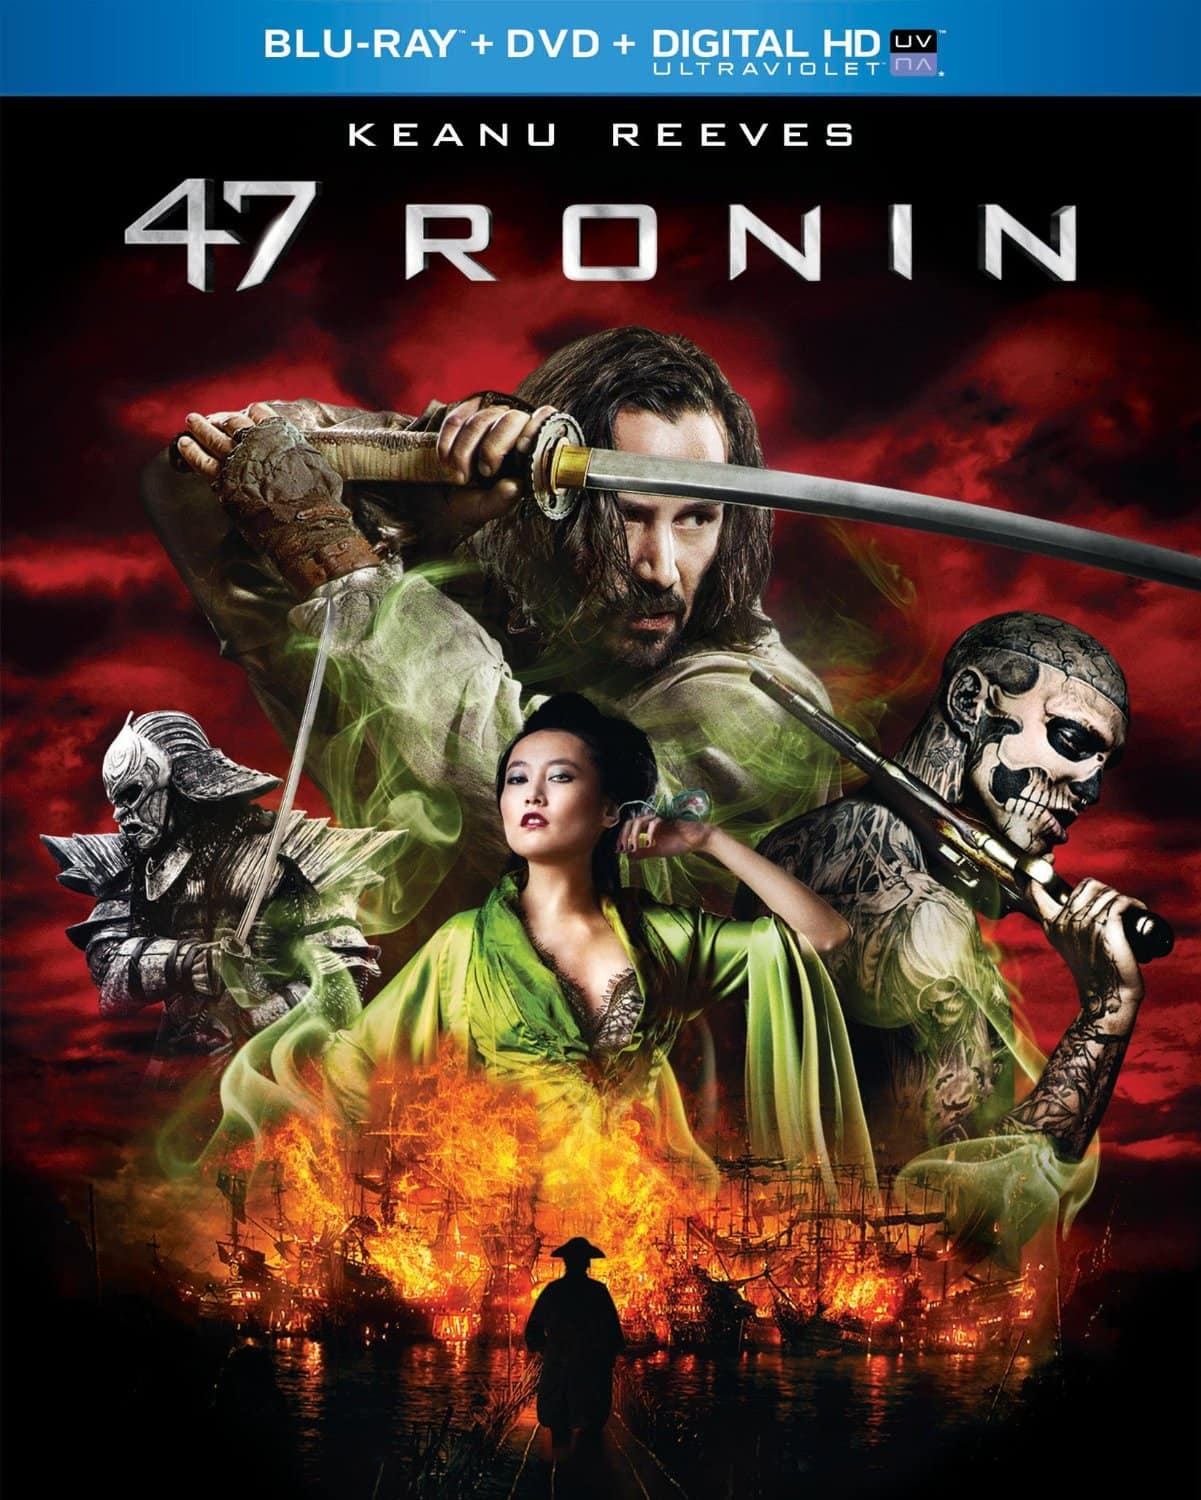 47 Ronin (Blu-ray + DVD + Digital HD w/ UltraViolet)  $5